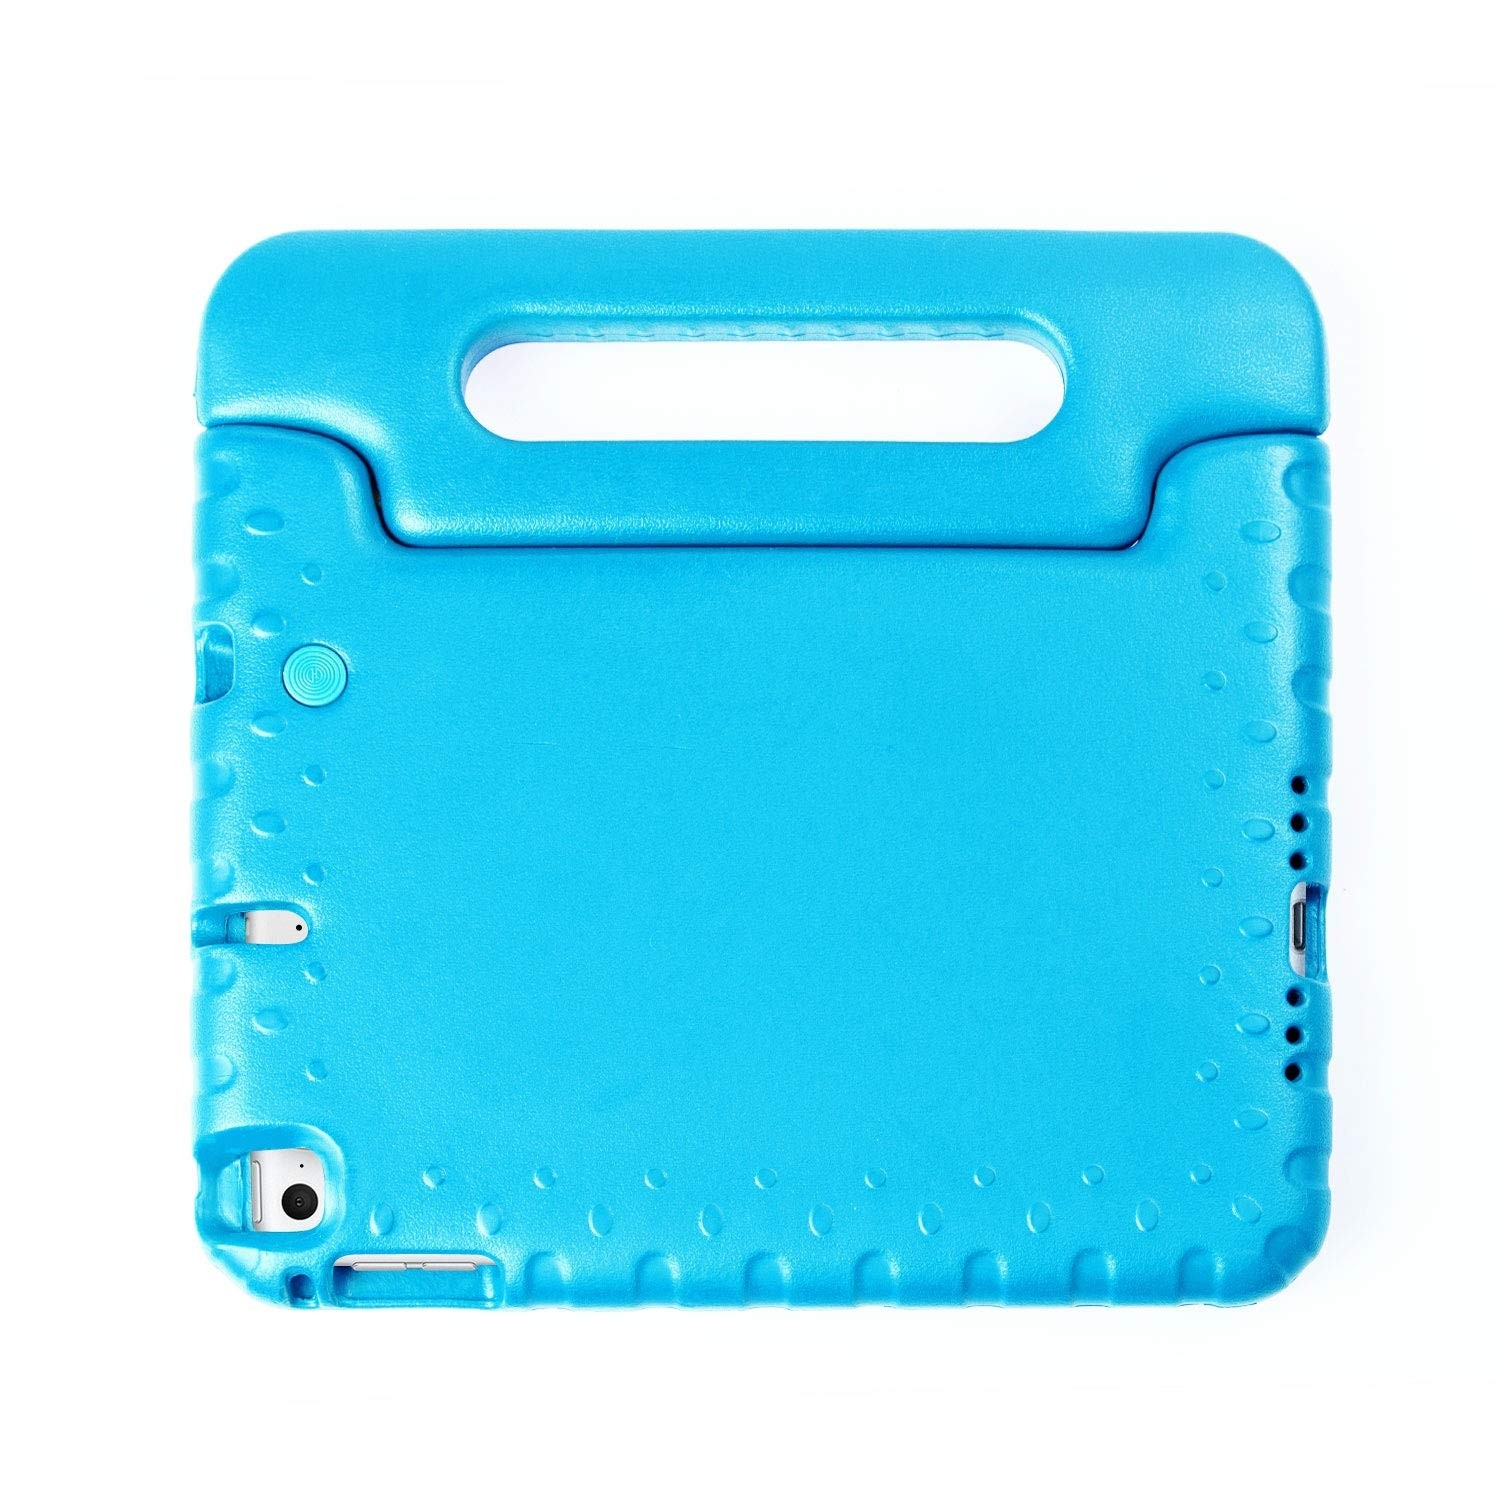 Kids Case for iPad Mini 5, 4 - Light Weight Shockproof Convertible Handle Super Protective Stand Kids - Blue, B07Q7H7L7N